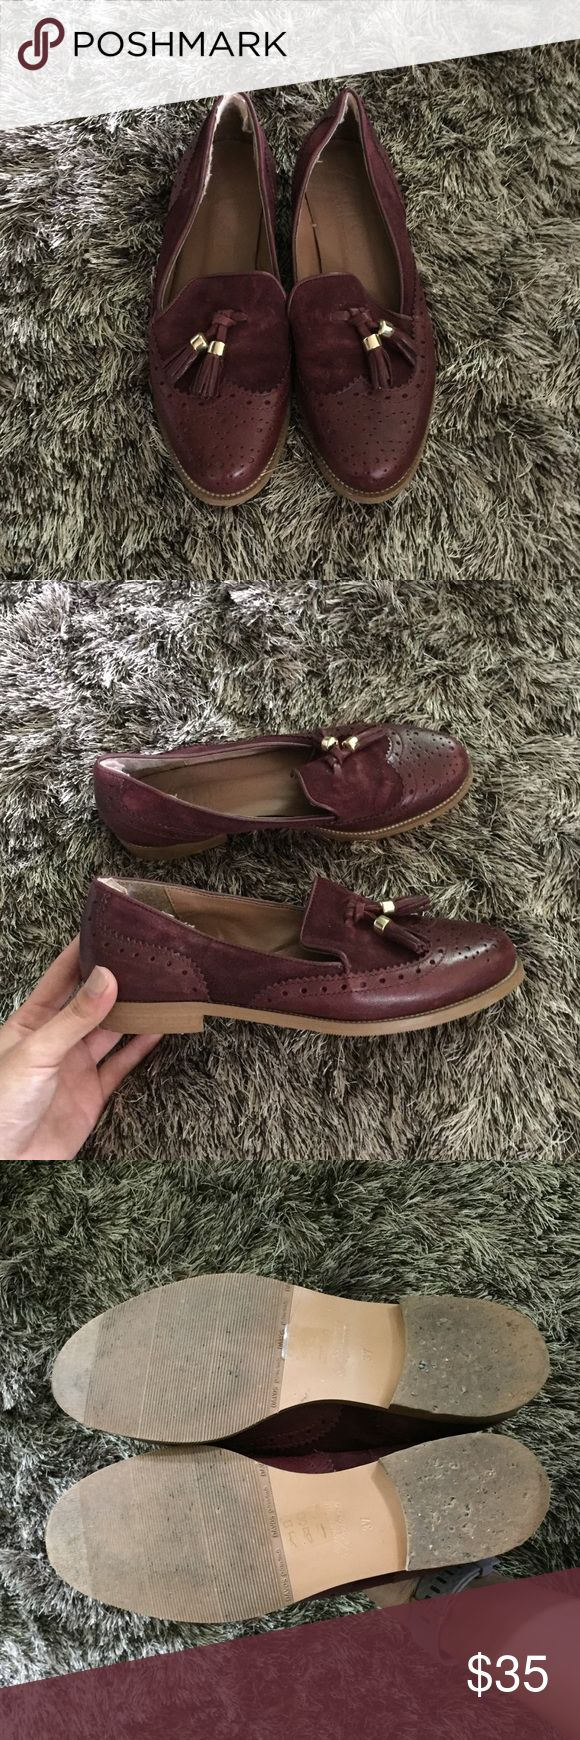 Maroon tassel loafers Really adorable/classy loafers!! They just take up space in my closet :( office brand, bought in Ireland Shoes Flats & Loafers